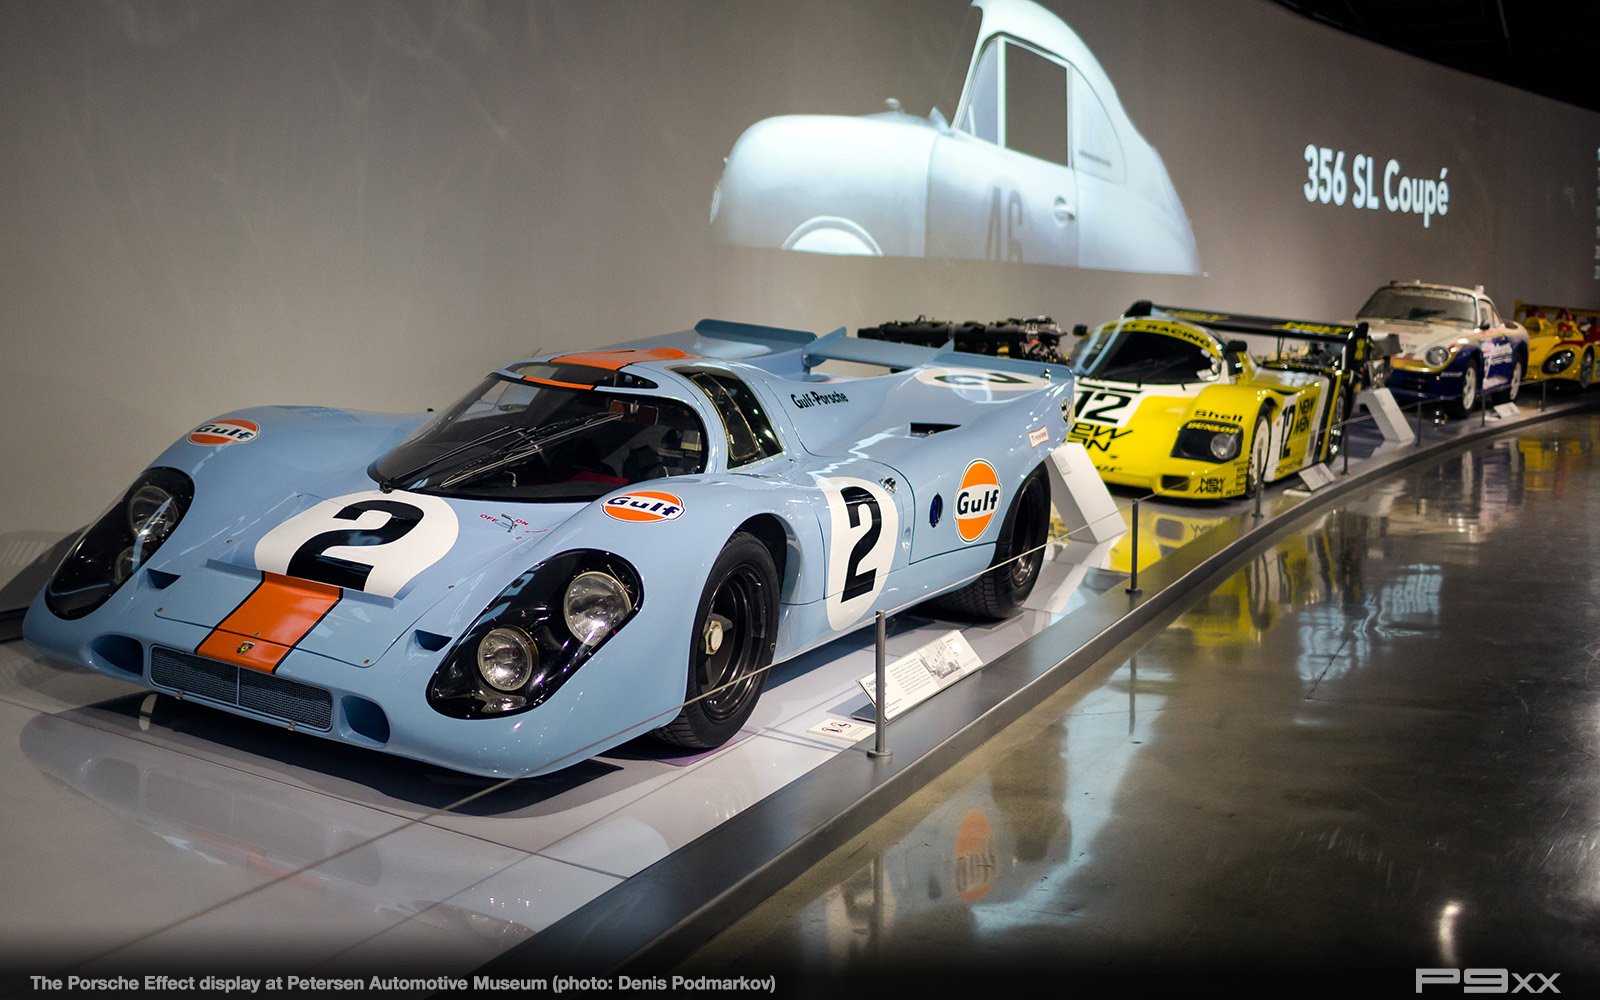 2018-the-porsche-effect-petersen-museum-dpod-350